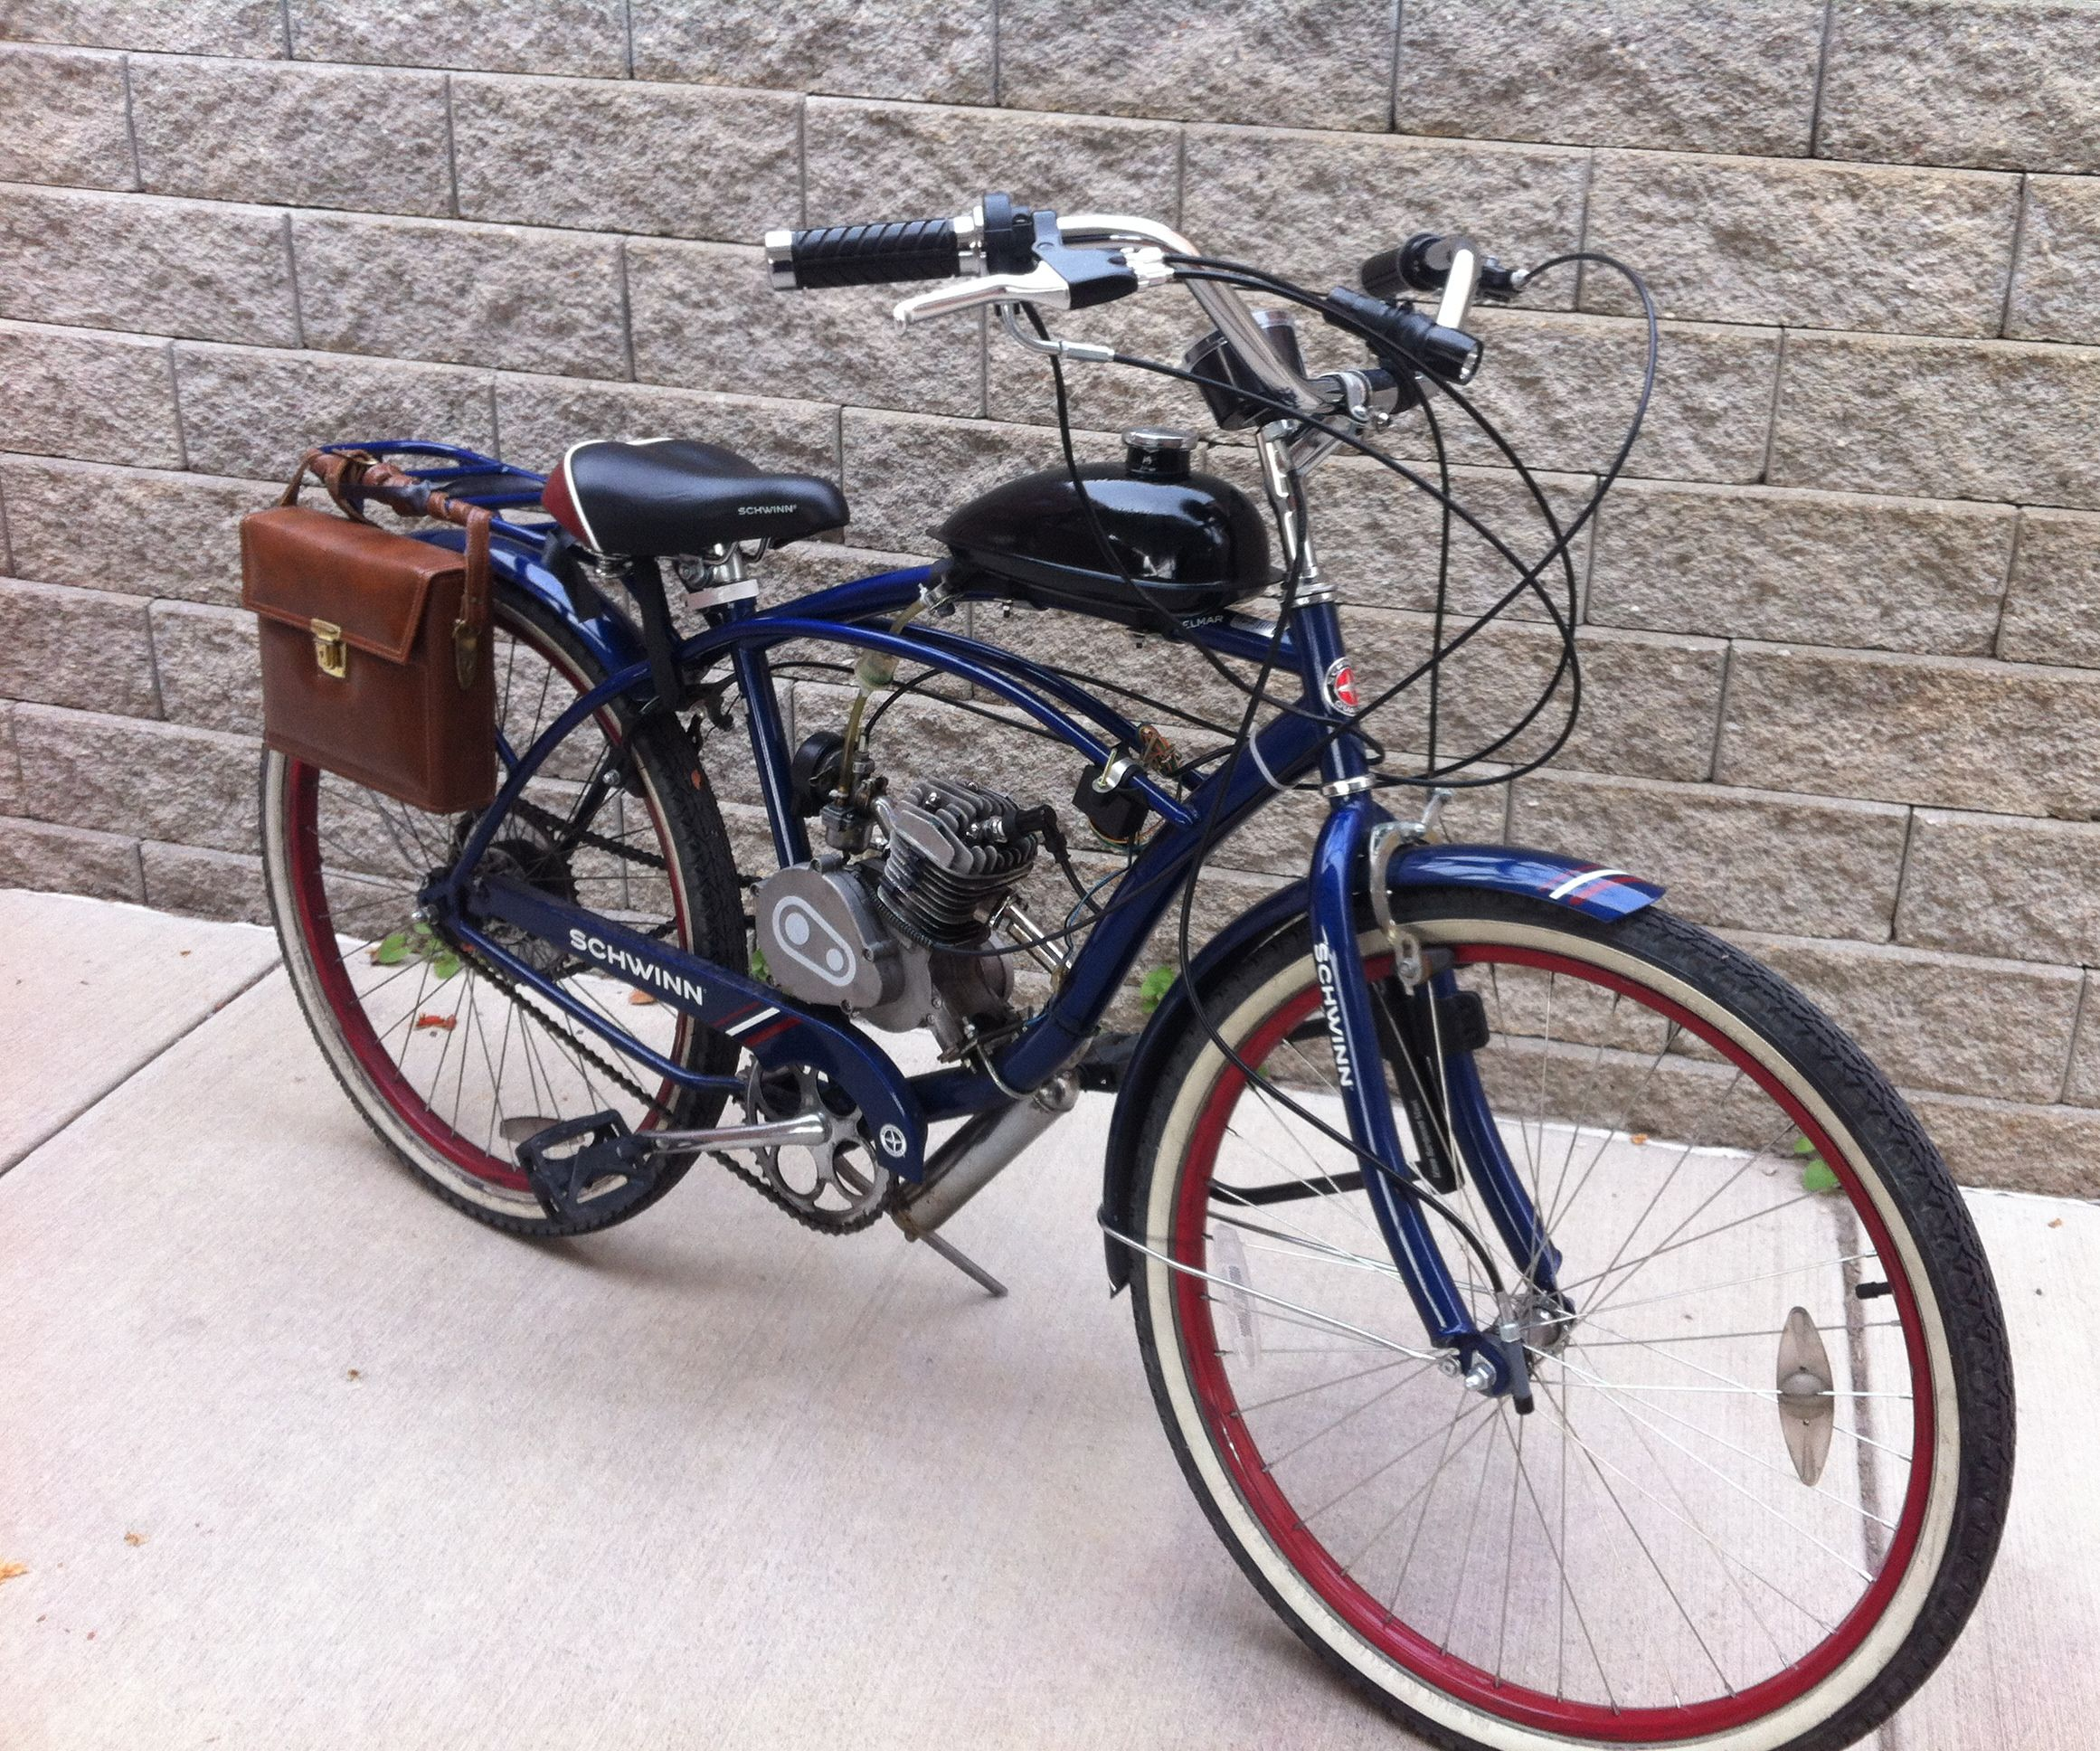 My Motorized Bicycle